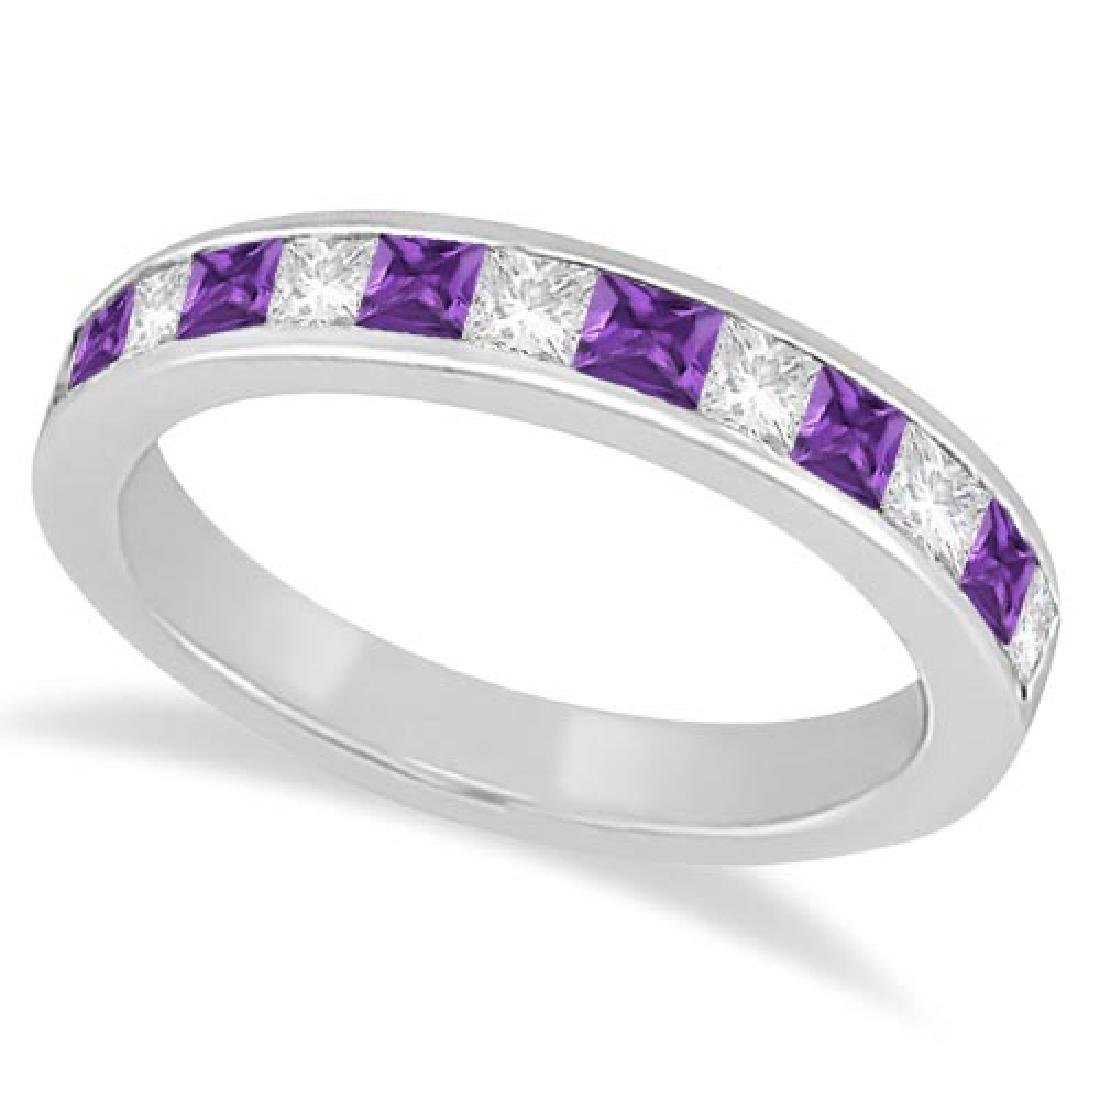 Channel Amethyst and Diamond Wedding Ring 14k White Gol